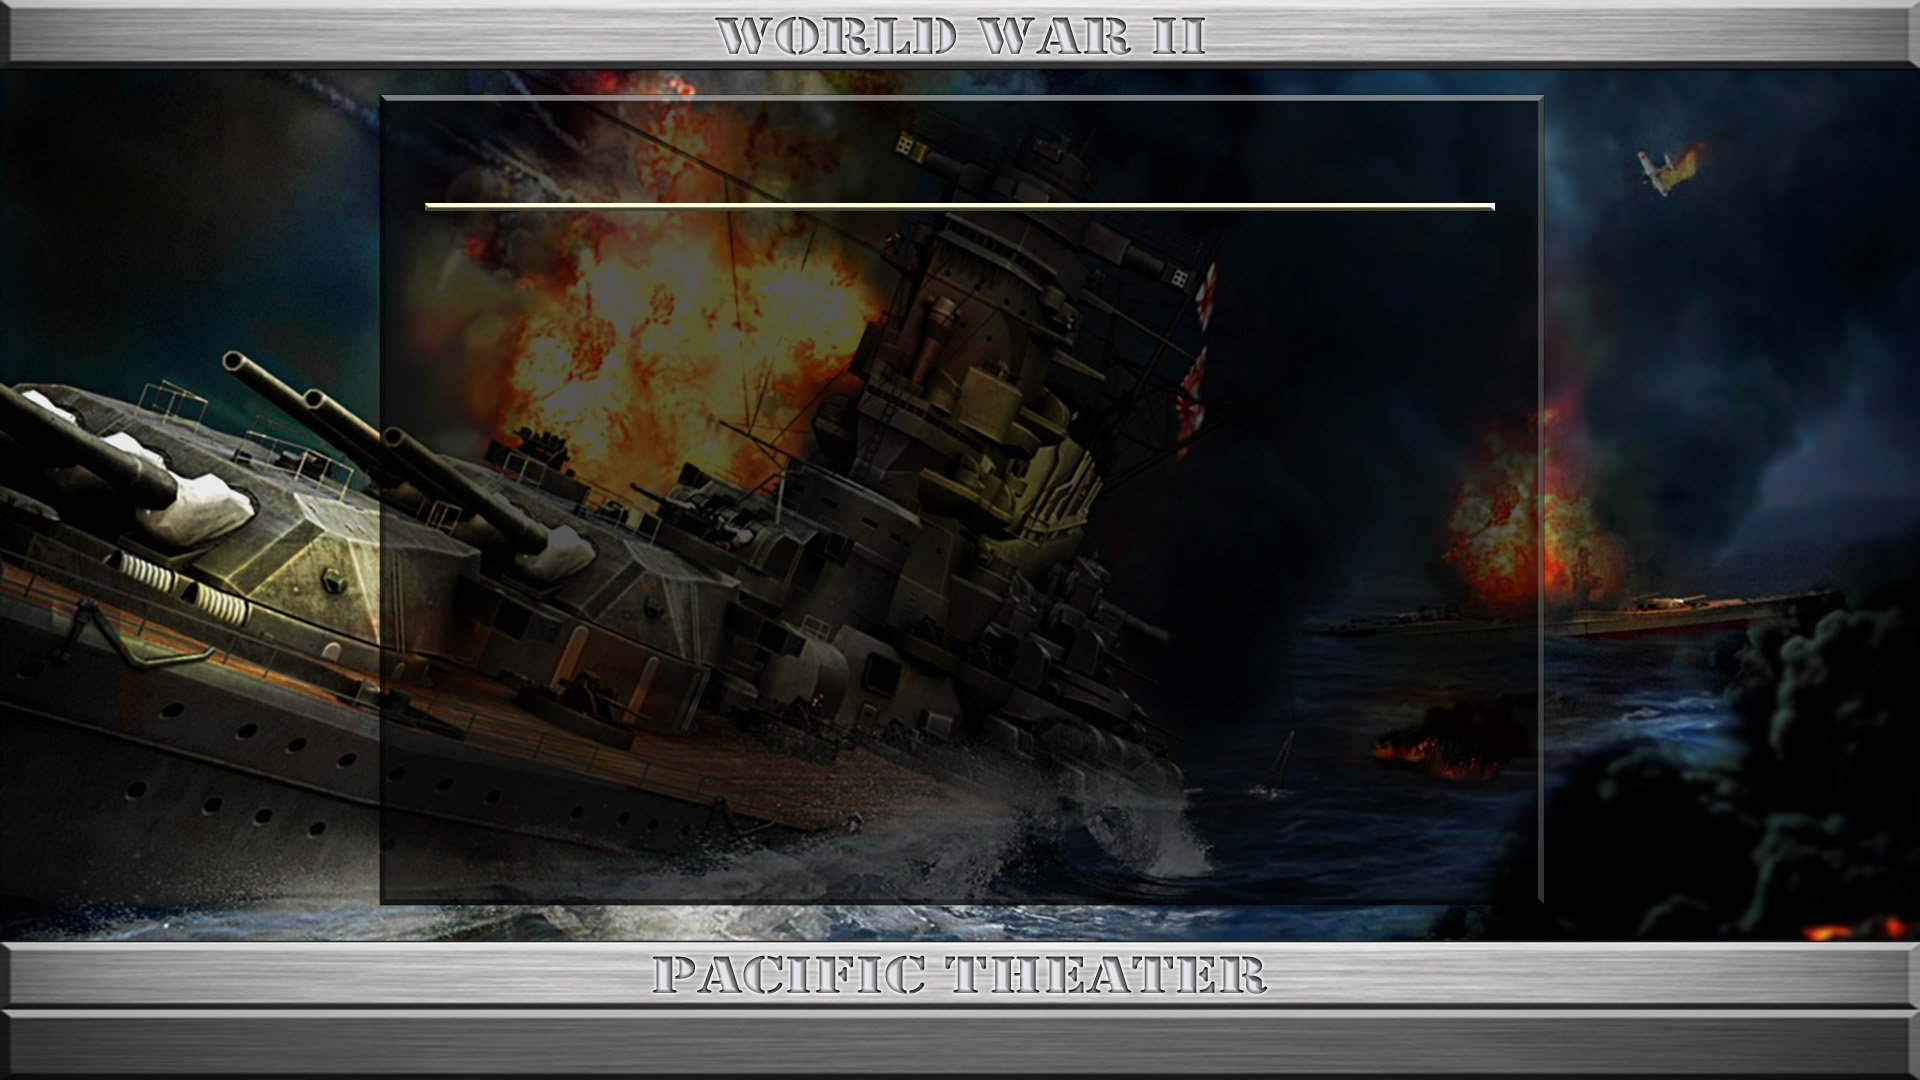 StrikeFighter2 World War II Pacific Theater (PTO) Hi-Res 1920x1080 Menu Screens and Music! Version 3